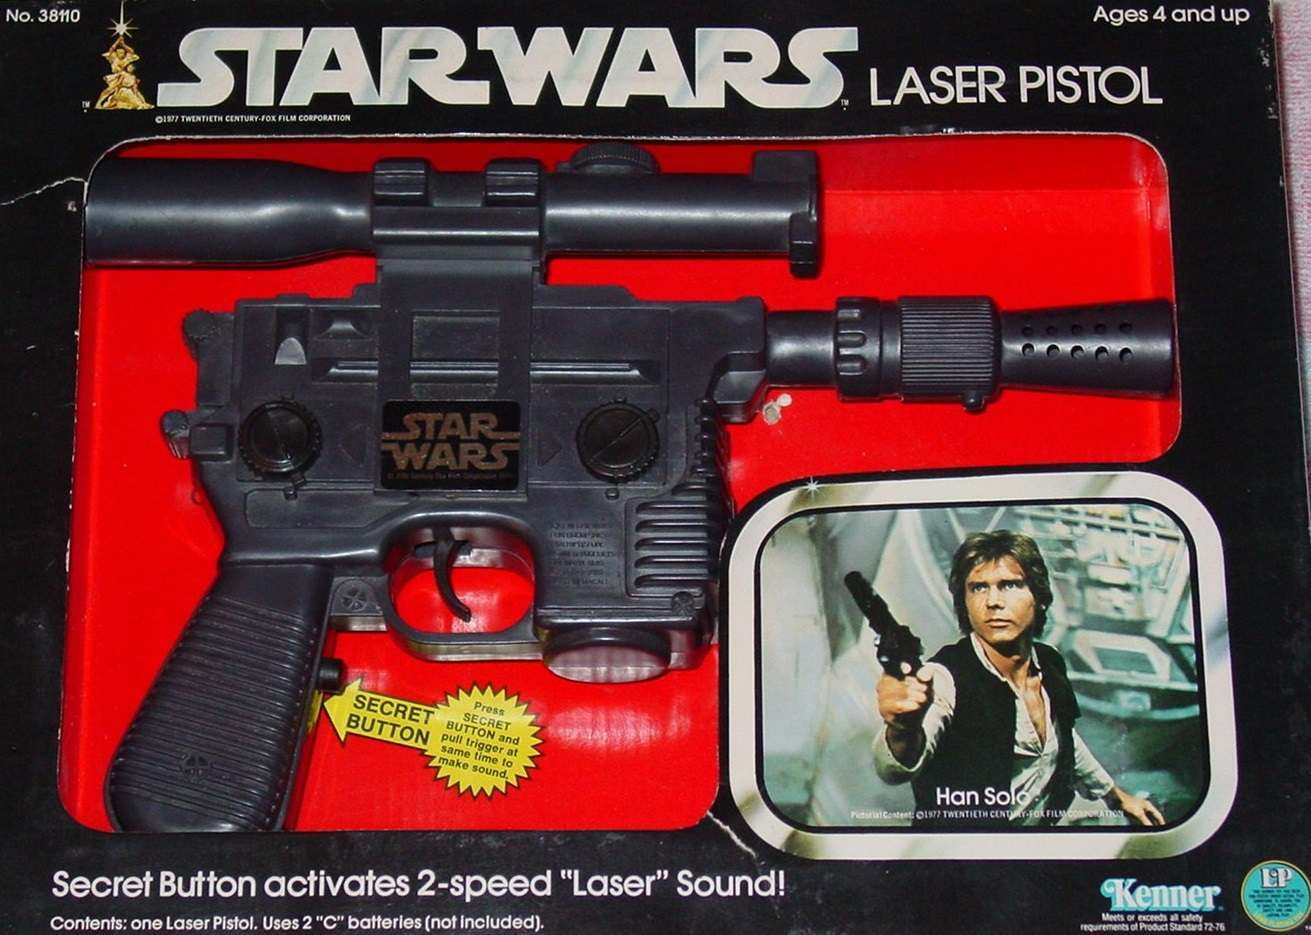 Star Wars Toy Guns : Set phasers to stun the five greatest toy space guns of